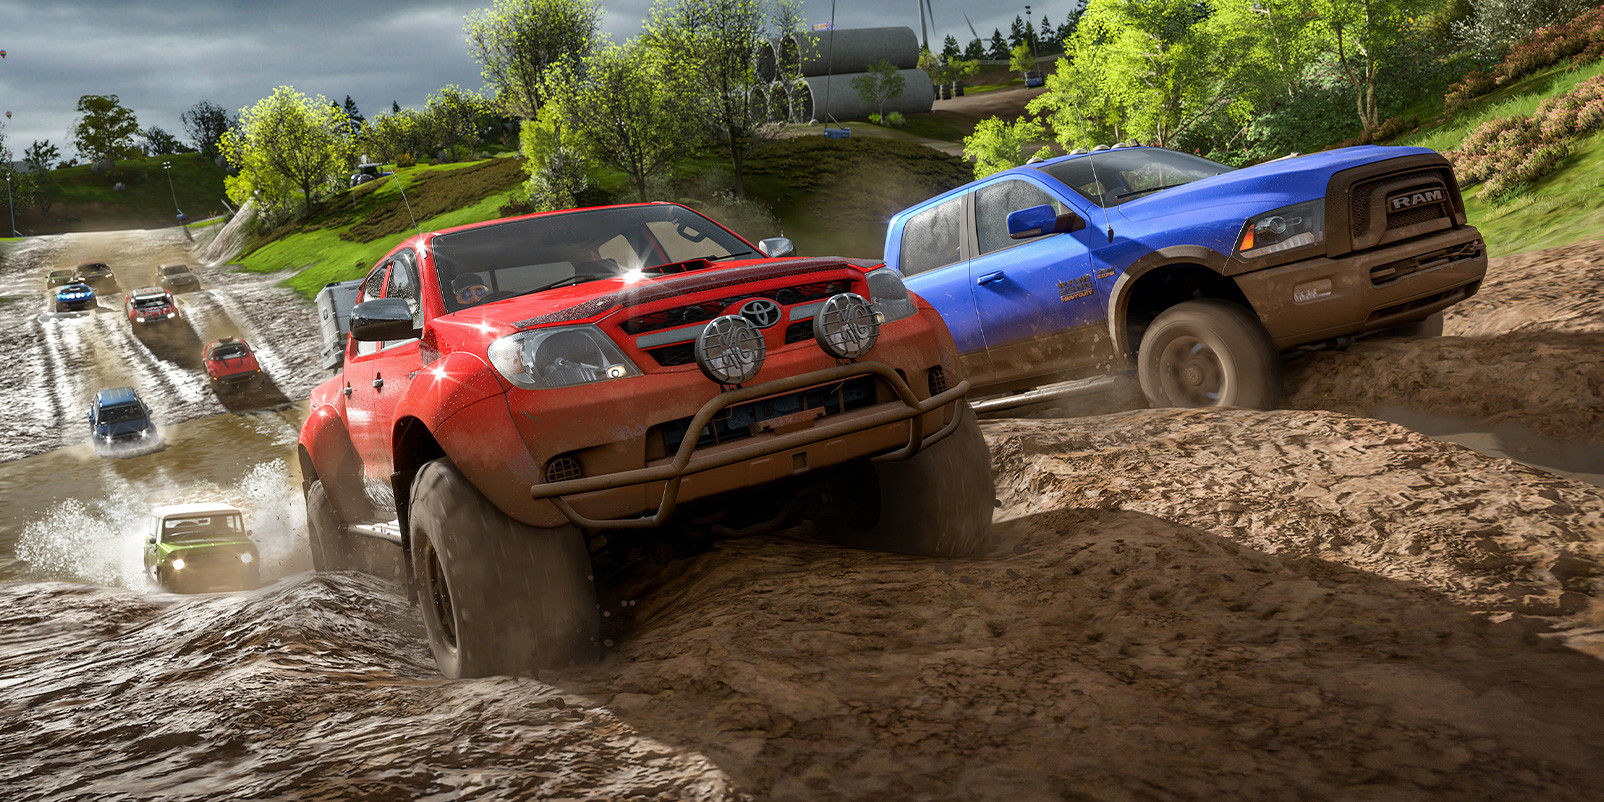 several off-road vehicles driving up a hill in Forza Horizon 4.